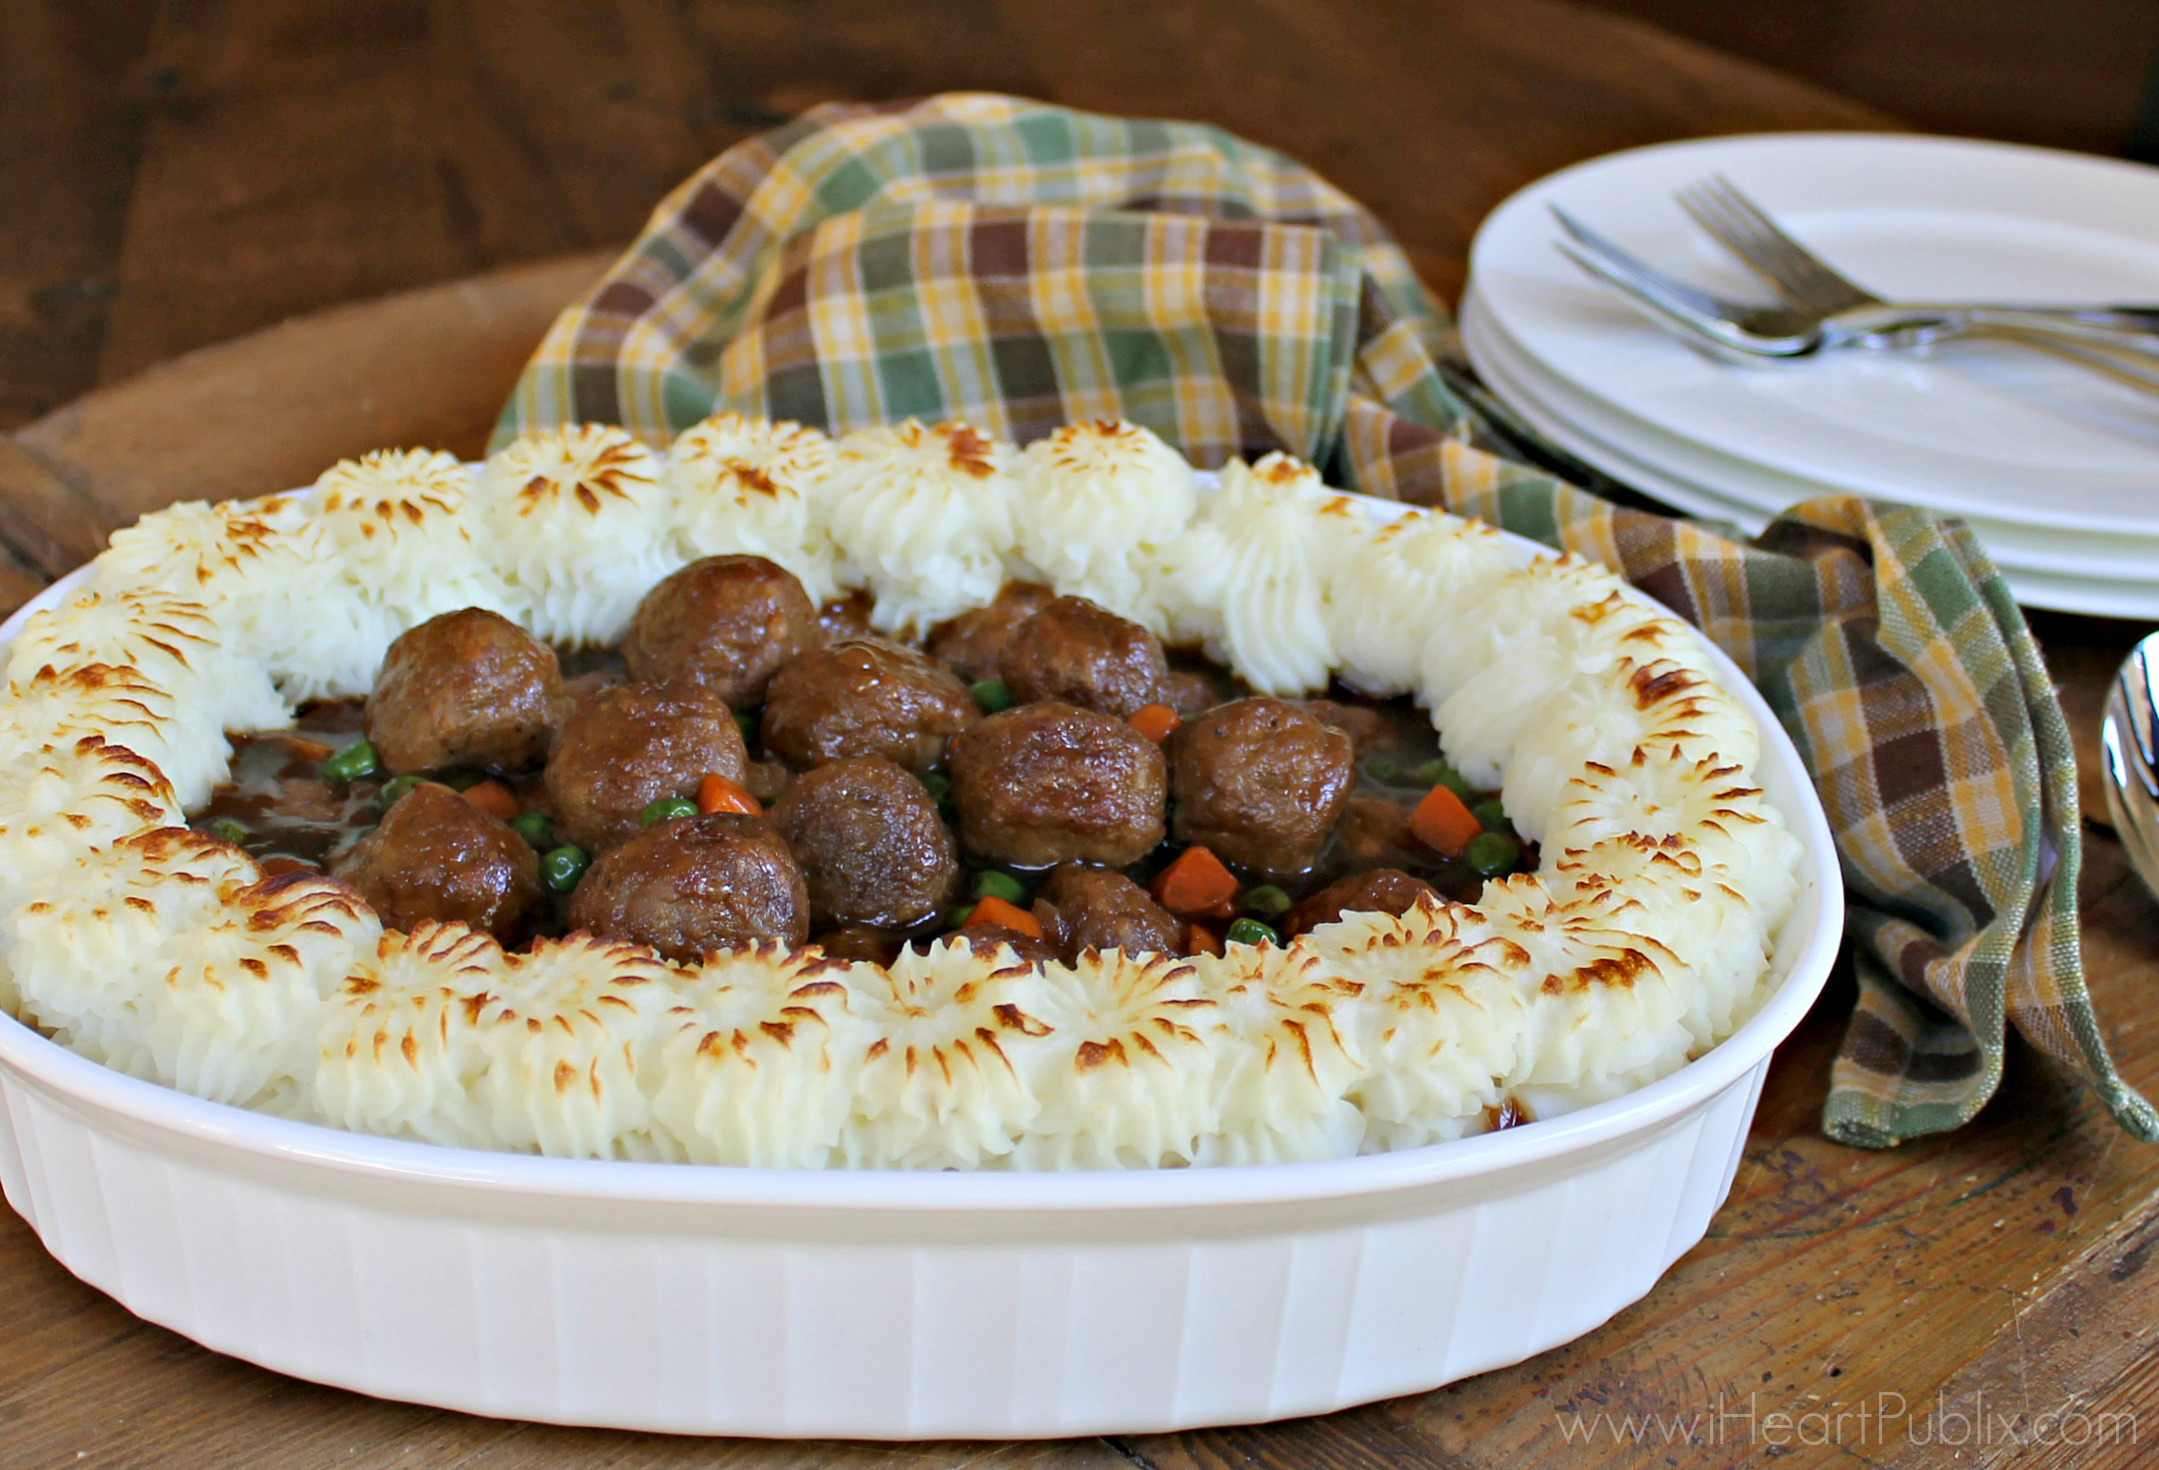 Shortcut Meatball Shepherd's Pie Recipe To Go With The Armour Meatball BOGO Sale on I Heart Publix